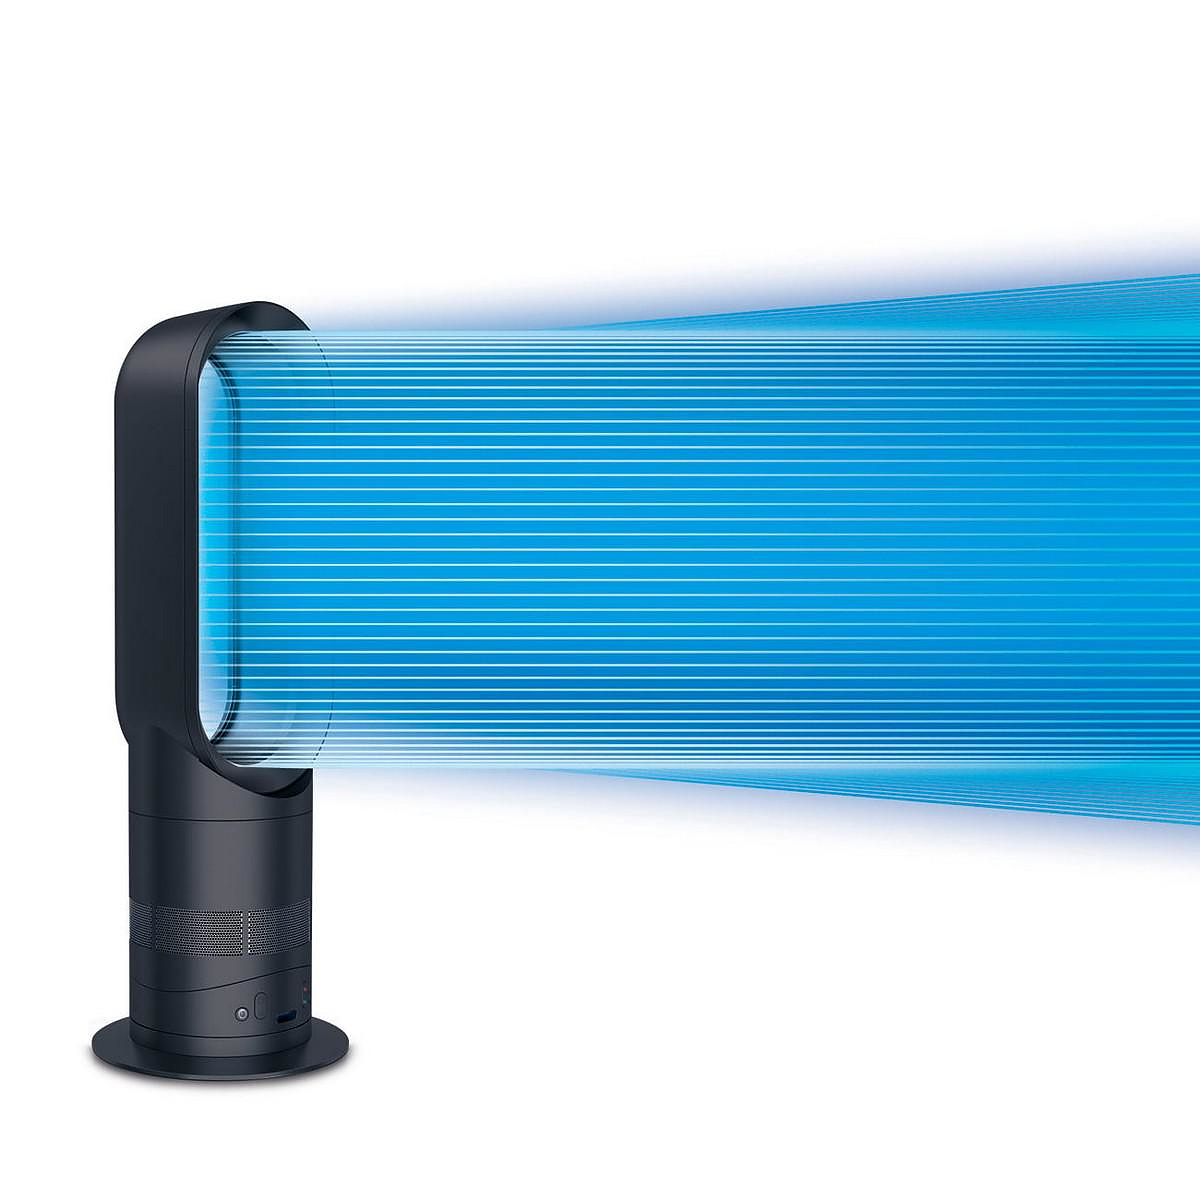 AM05 Hot + Cool Fan Heater by Dyson. - Design Is This